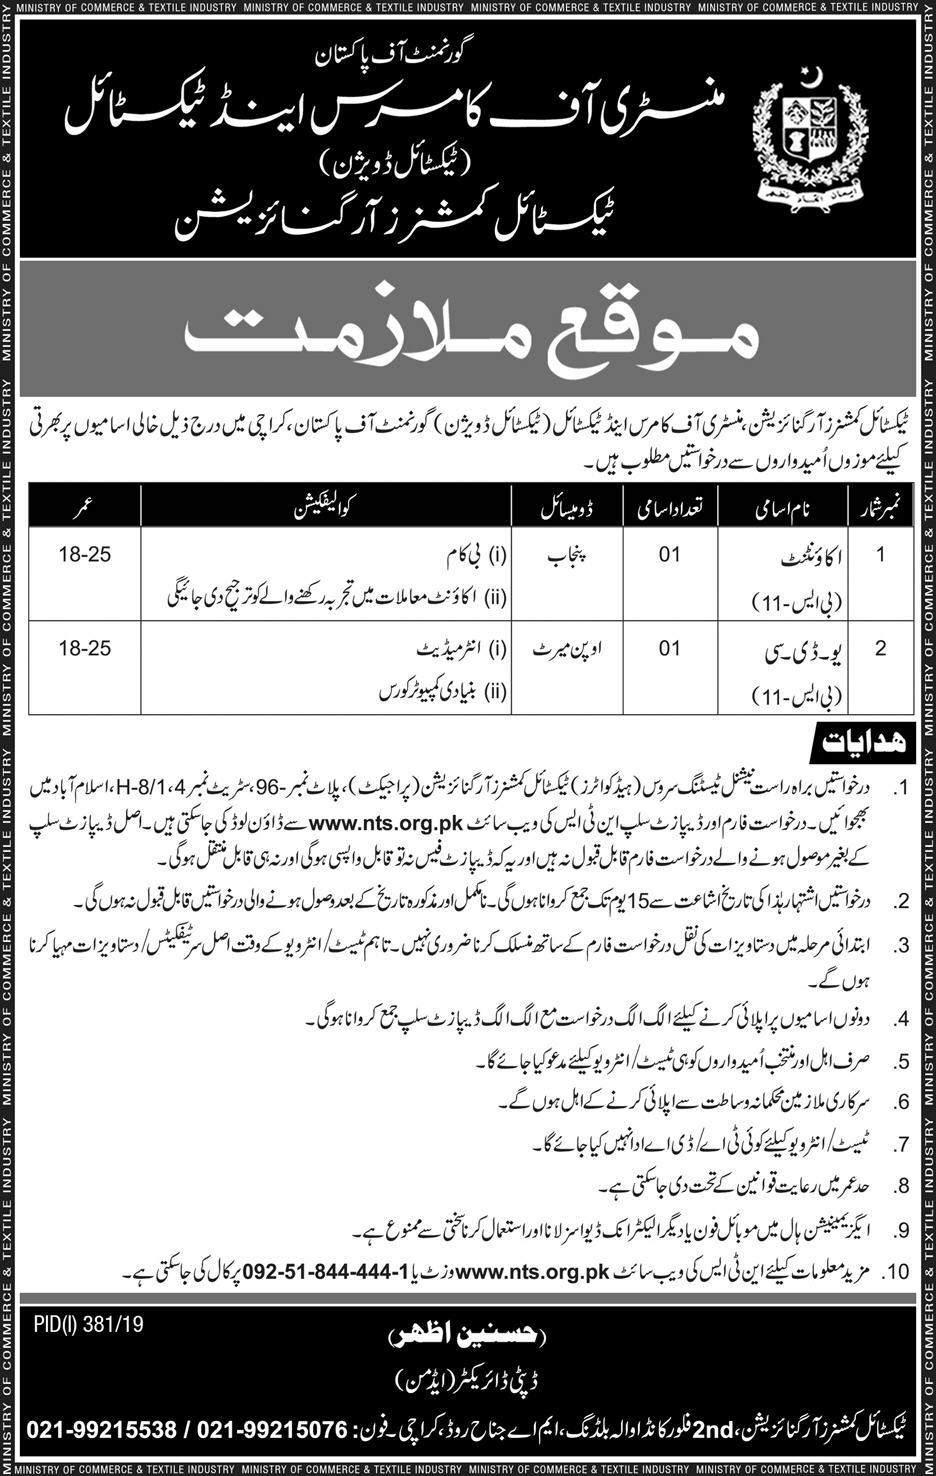 Advertisement for the Ministry of Commerce and Technology Jobs July 2019